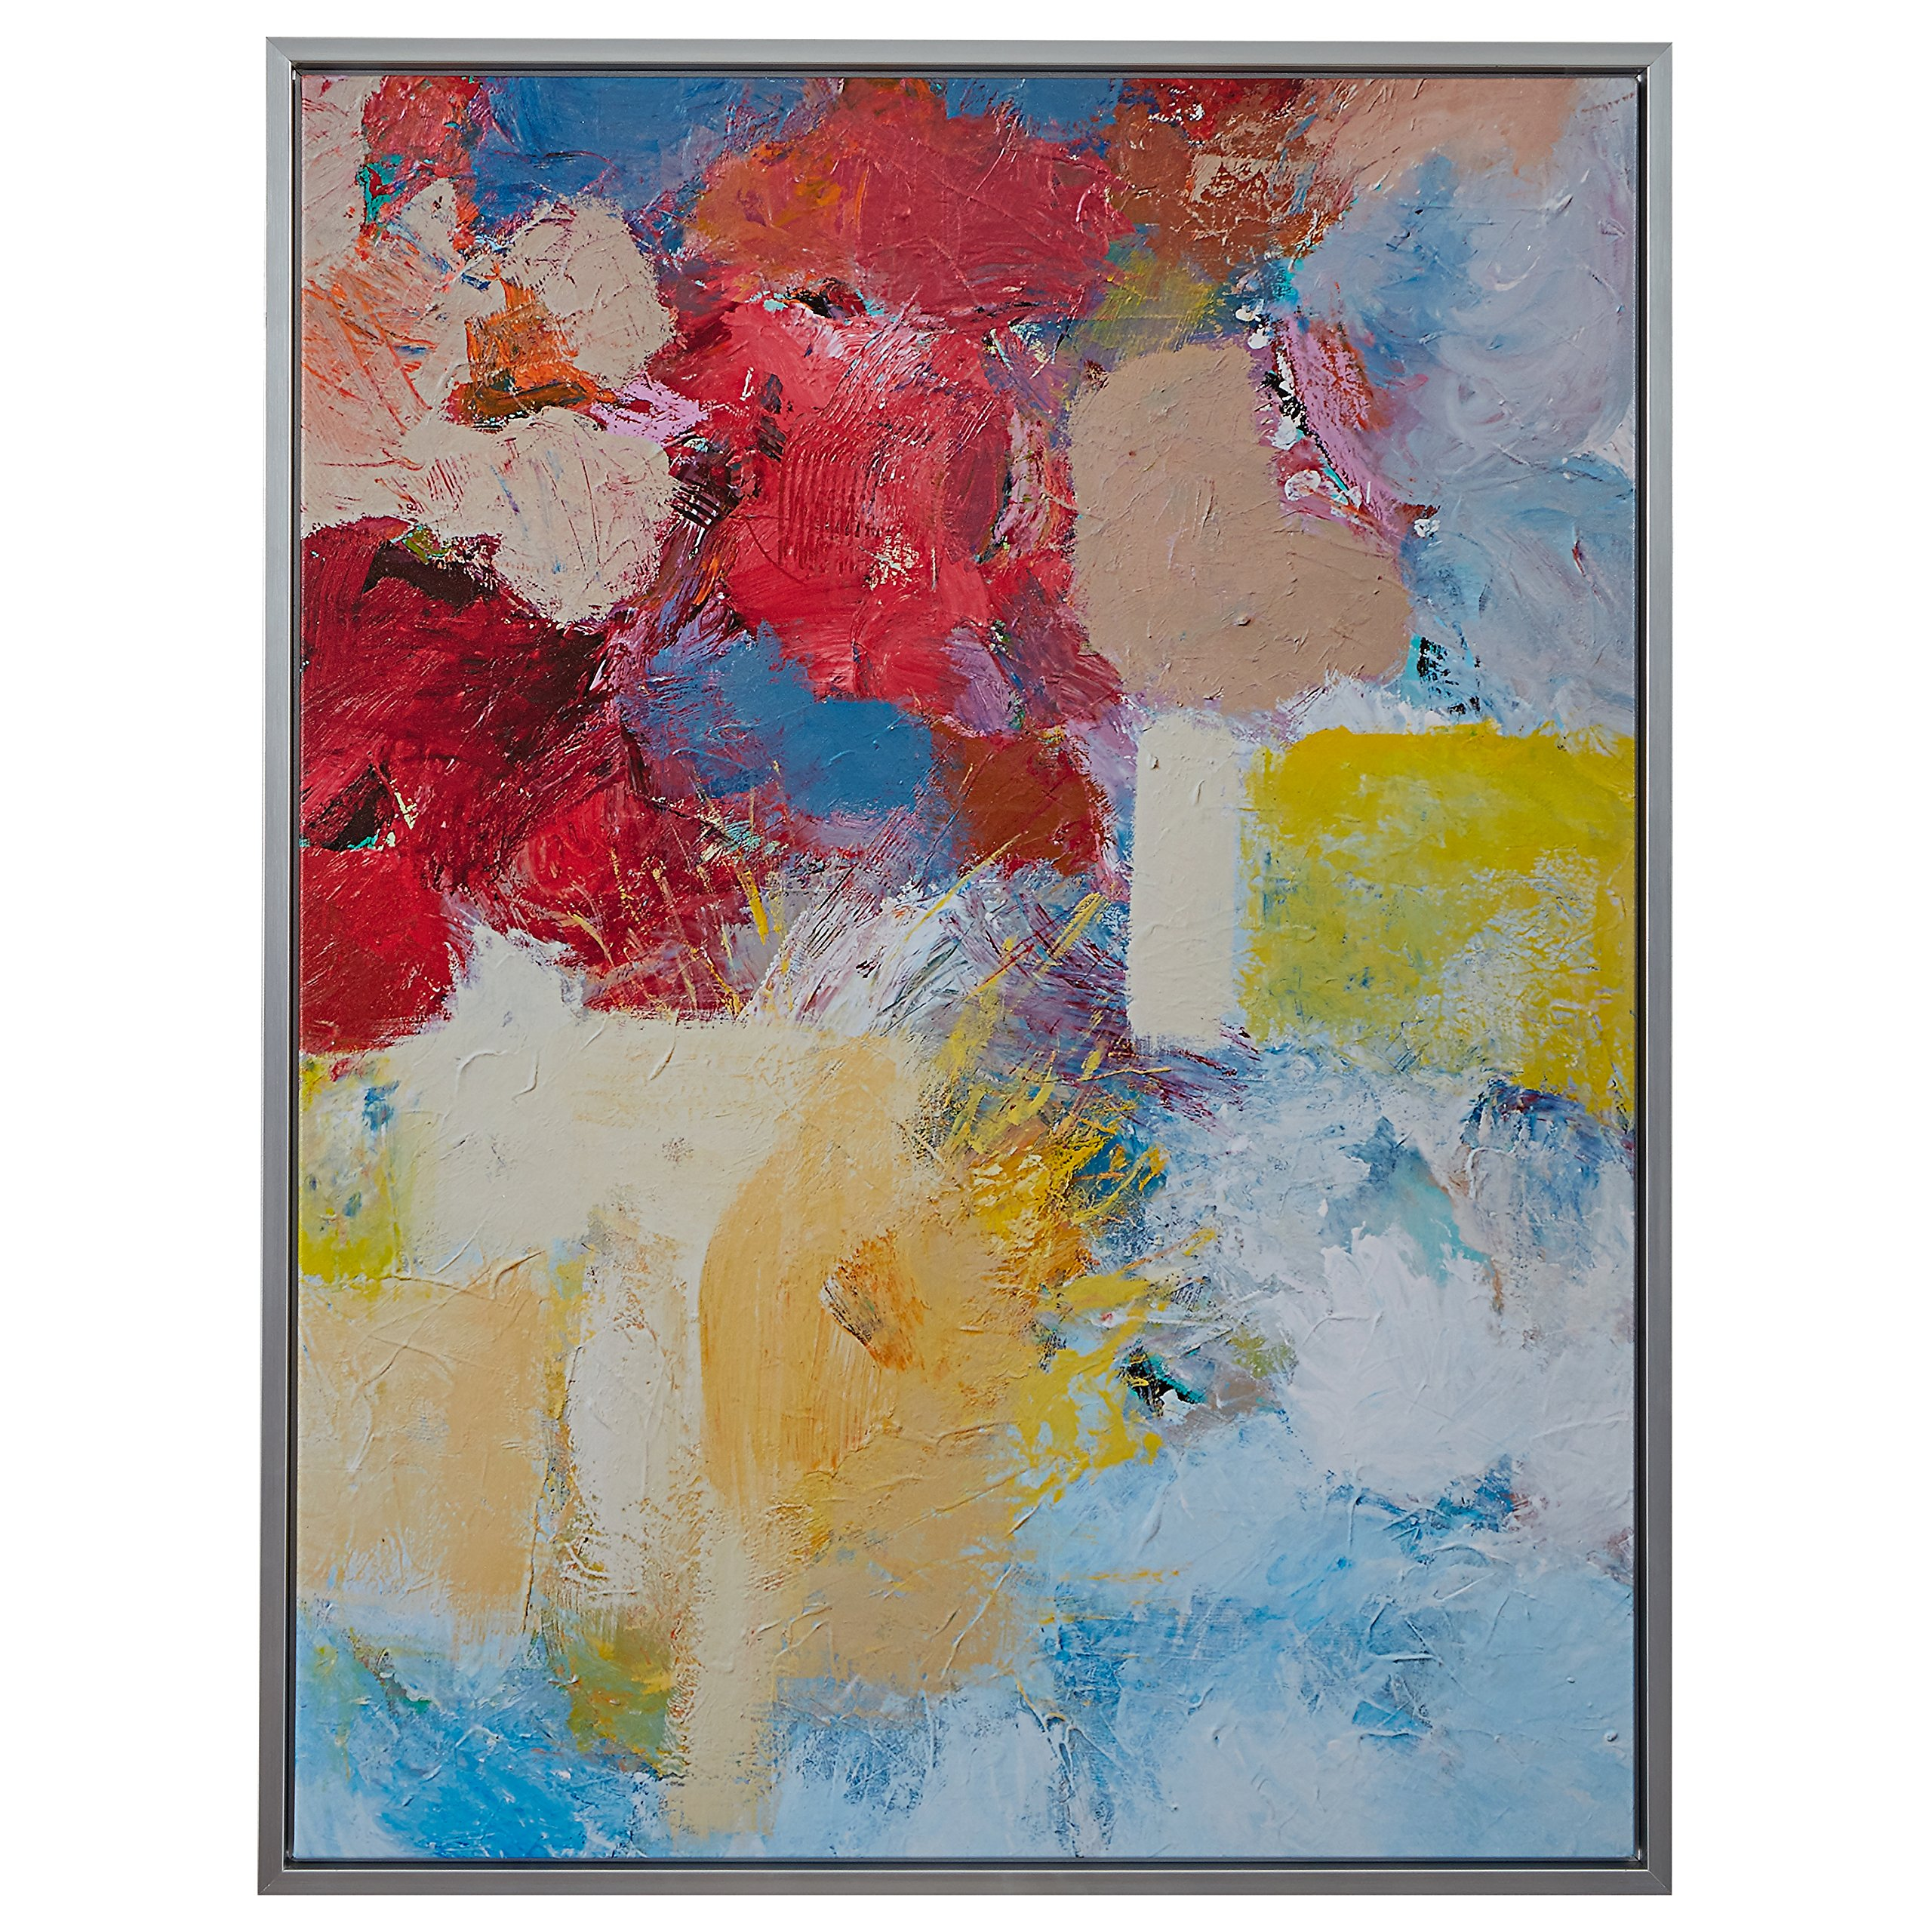 Abstract Red and Blue Print on Canvas, Silver Frame, 31.75'' x 41.75'' by Stone & Beam